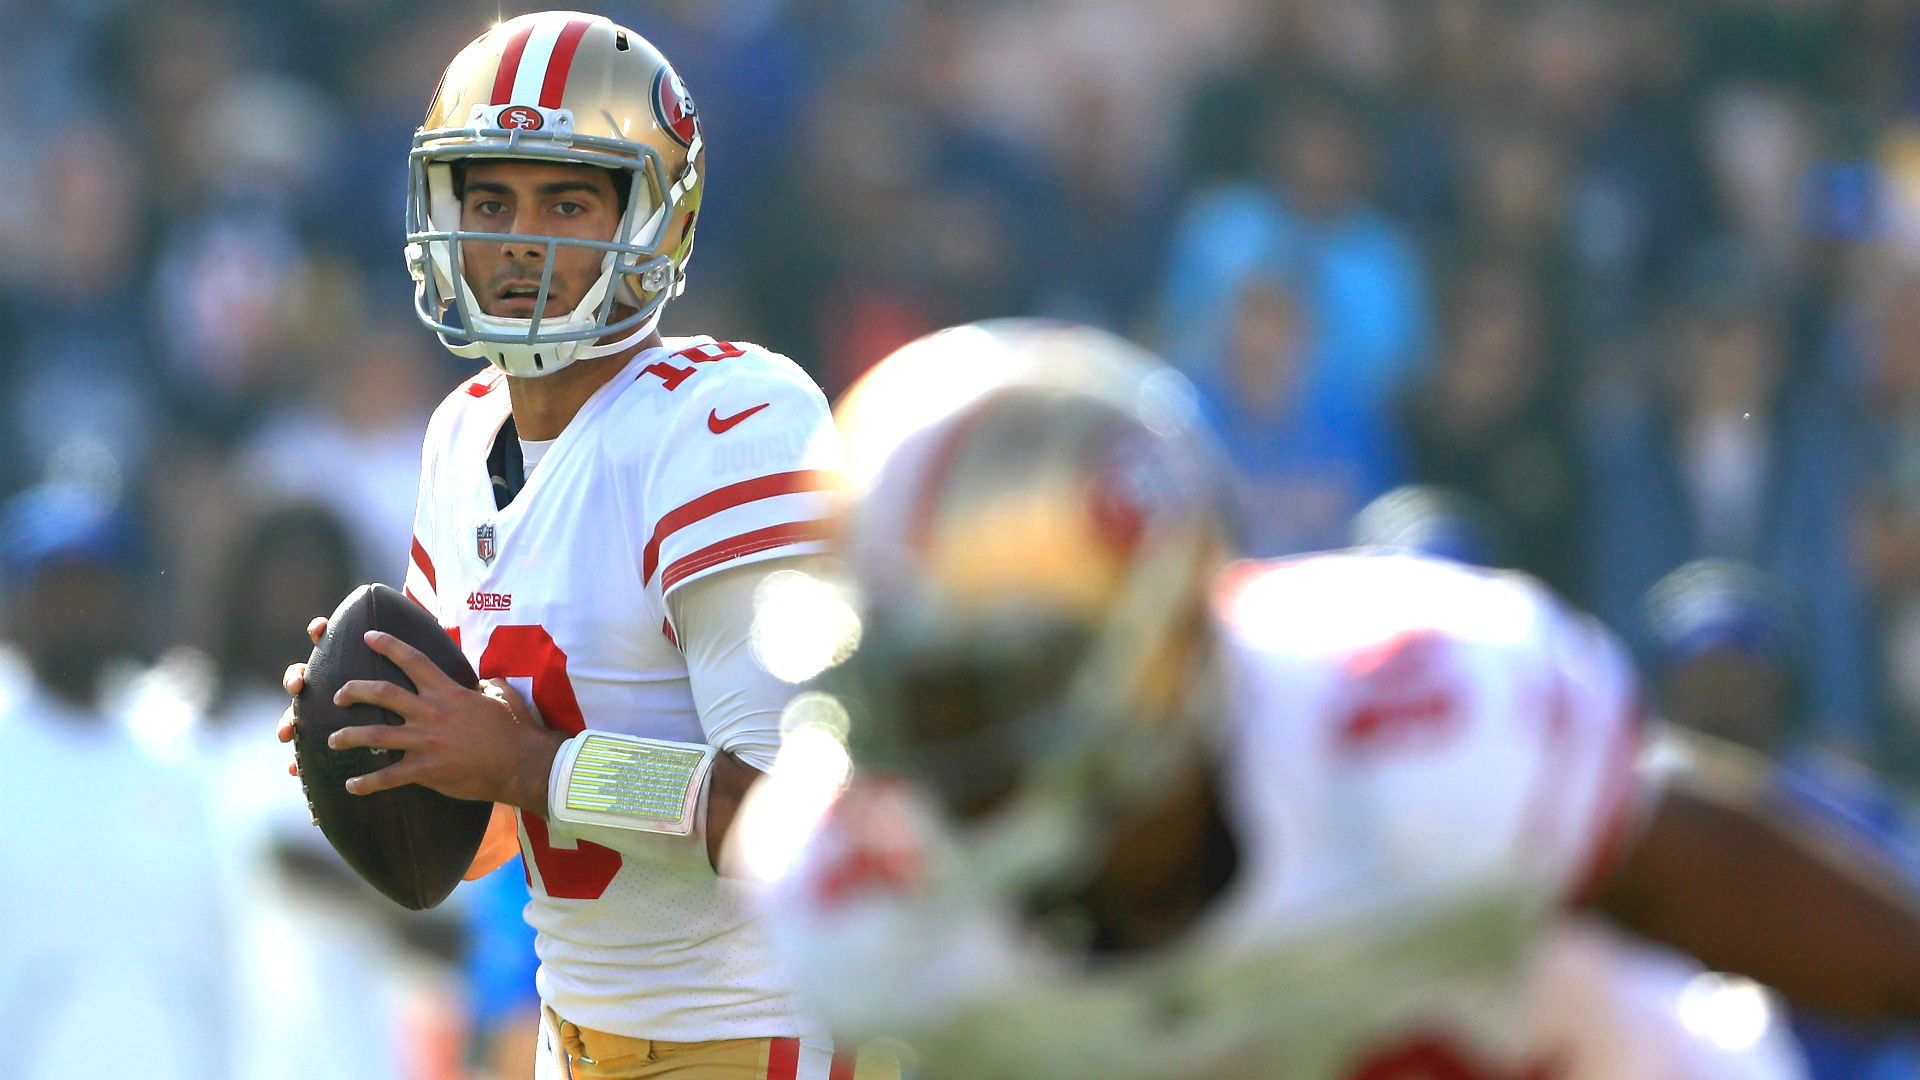 49ers depth chart 2019: Jimmy Garoppolo gets a boost from newcomers at RB, WR